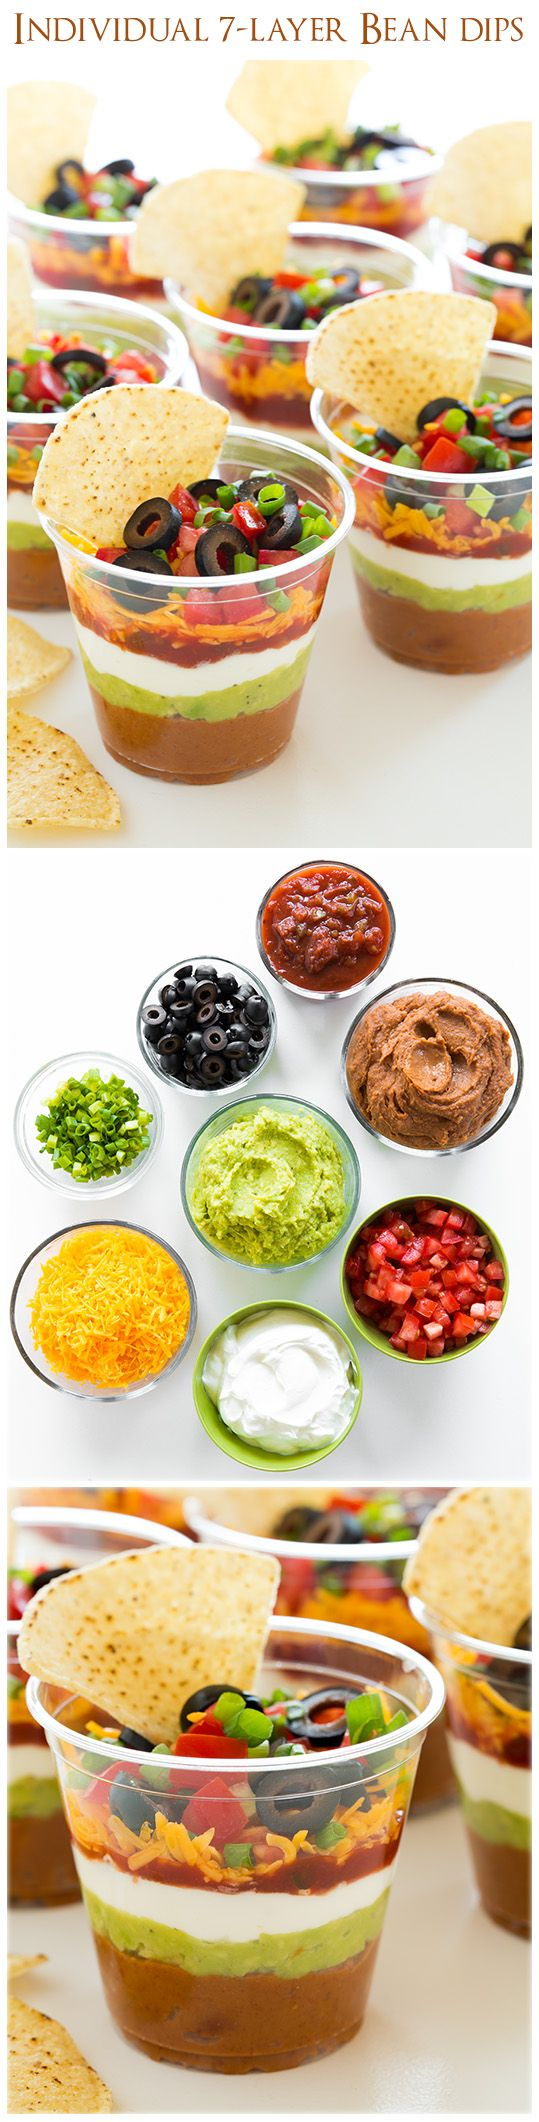 Individual 7 Layer Bean Dips --> shut down the double dippers! #appetizer #gameday